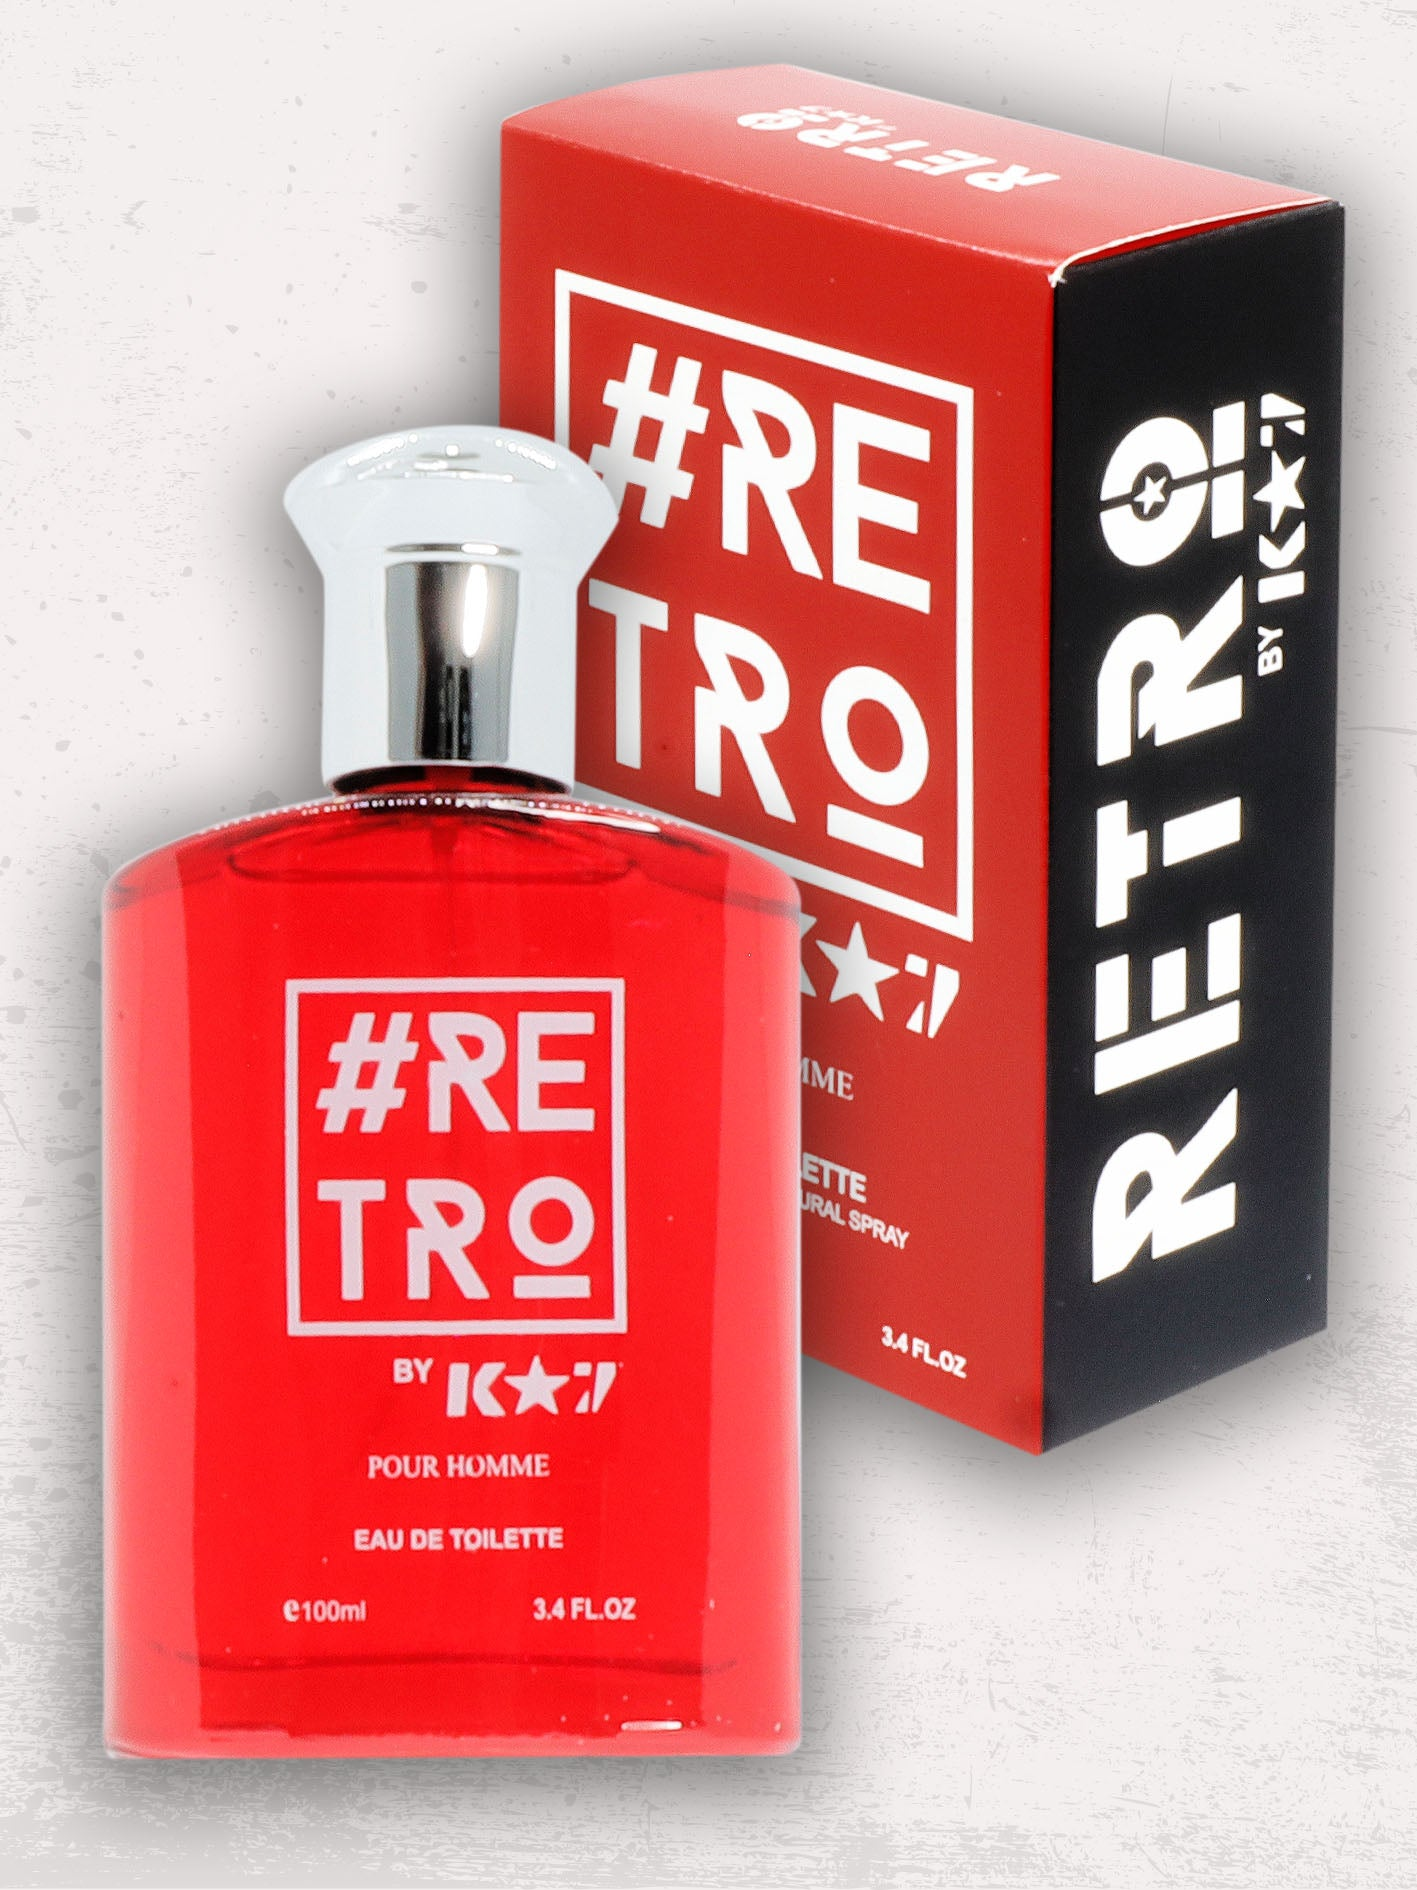 Retro Eau de Toilette 100ml